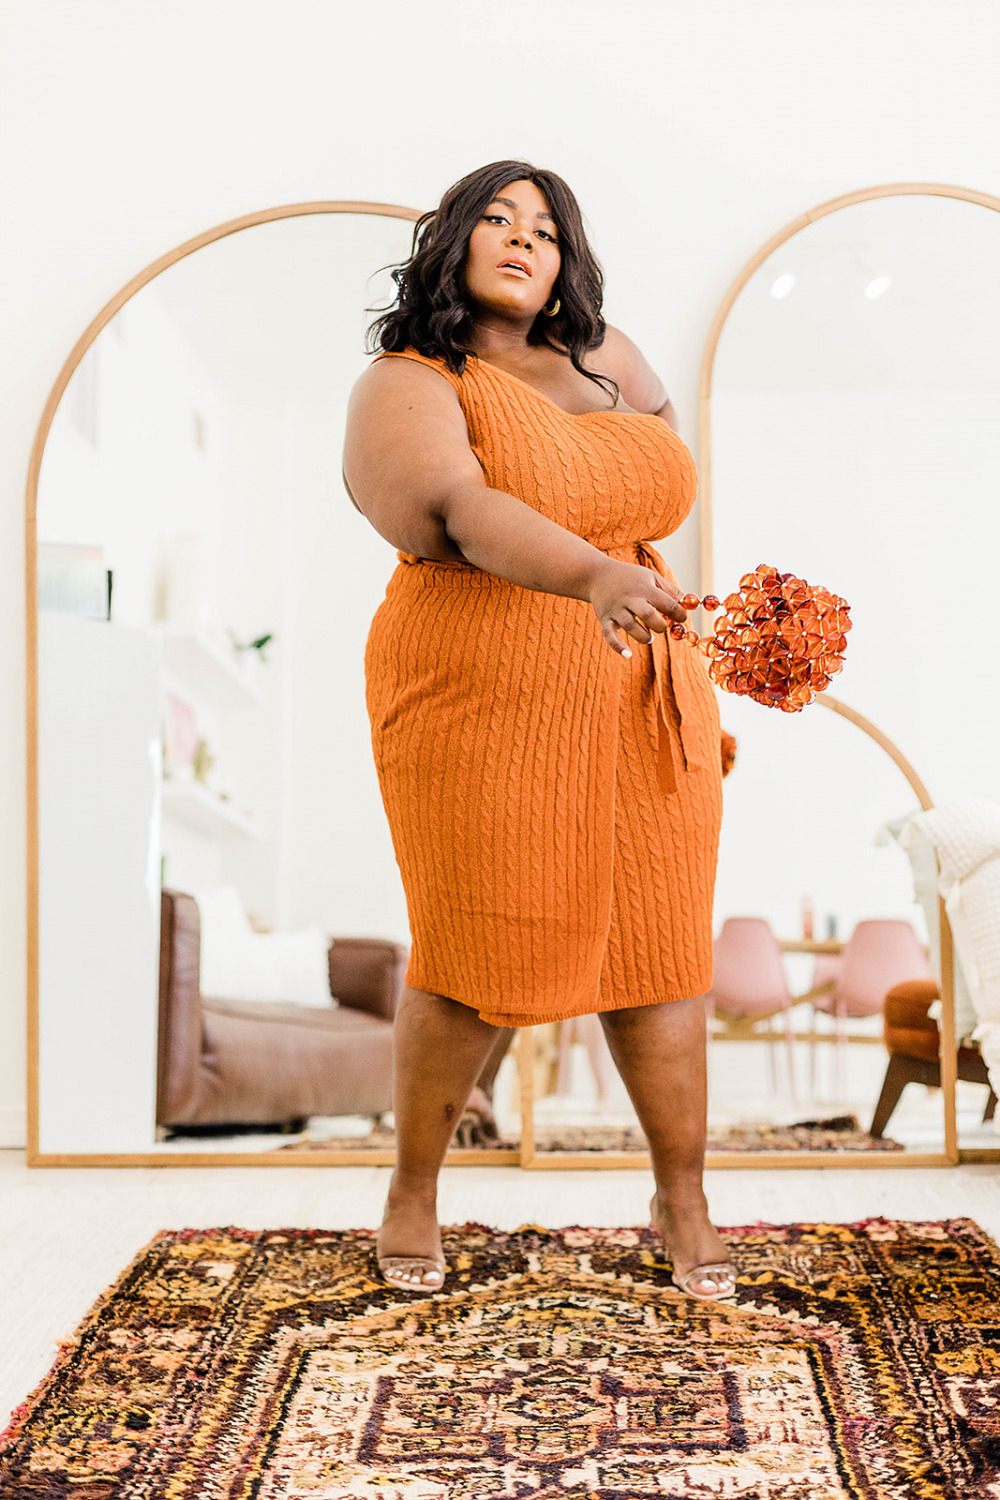 Anthropologie Ribbed Knit Skirt Set, Anthropologie Plus, Matching Set for Summer , Plus Size Fashion, Plus Size Matching Set, Plus Size Summer Outfit Ideas, Urban Outfitters, Tabitha Arc Mirror, Boho Home Style, Boho Home Decor